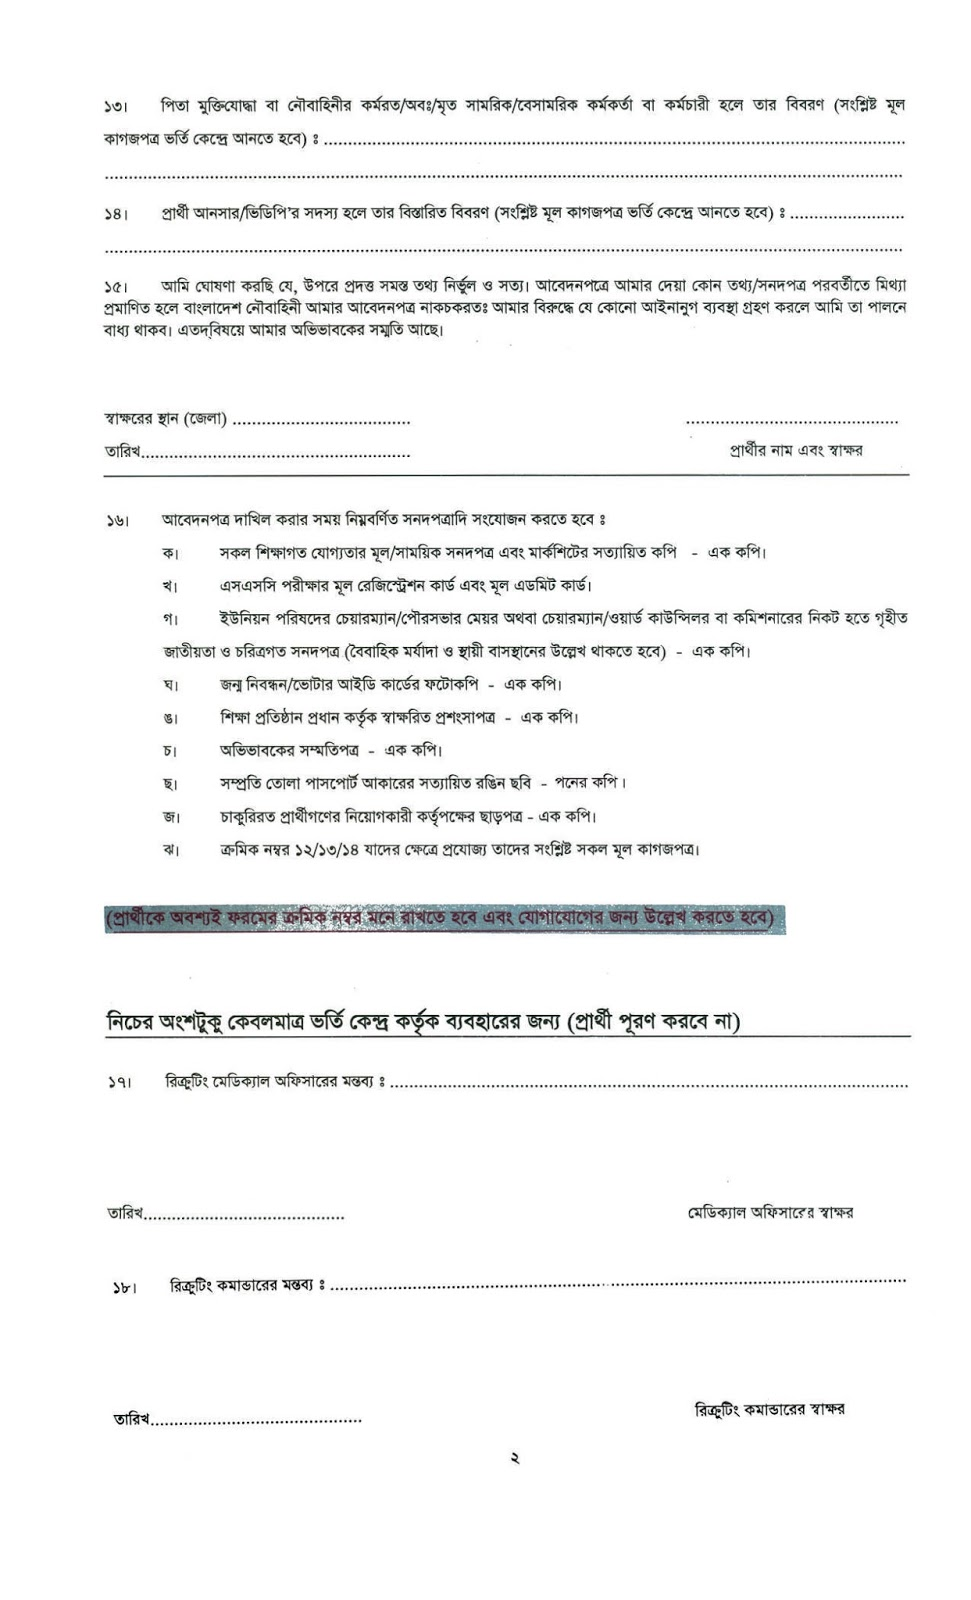 Bangladesh Navy Sailor and MODC(Navy) Application Form